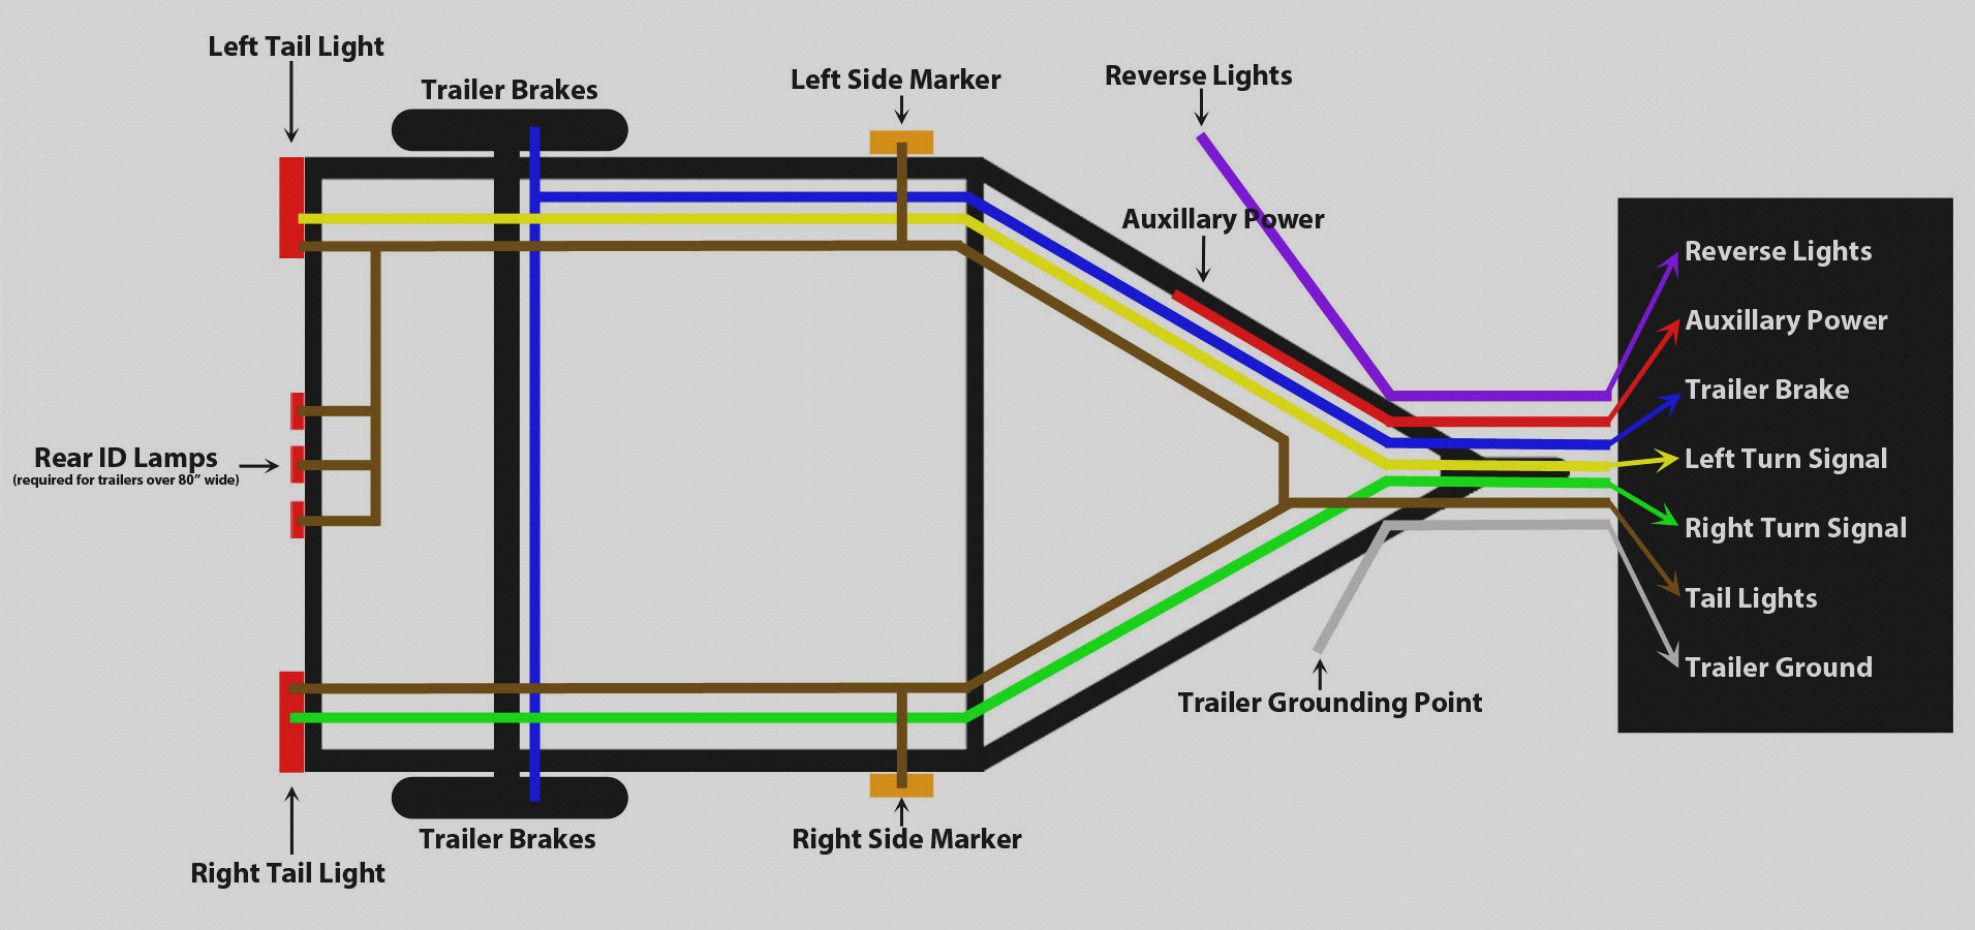 4 Prong Trailer Plug Wiring Diagram Wire Flat - Wiring Diagram Name - Flat 4 Trailer Plug Wiring Diagram